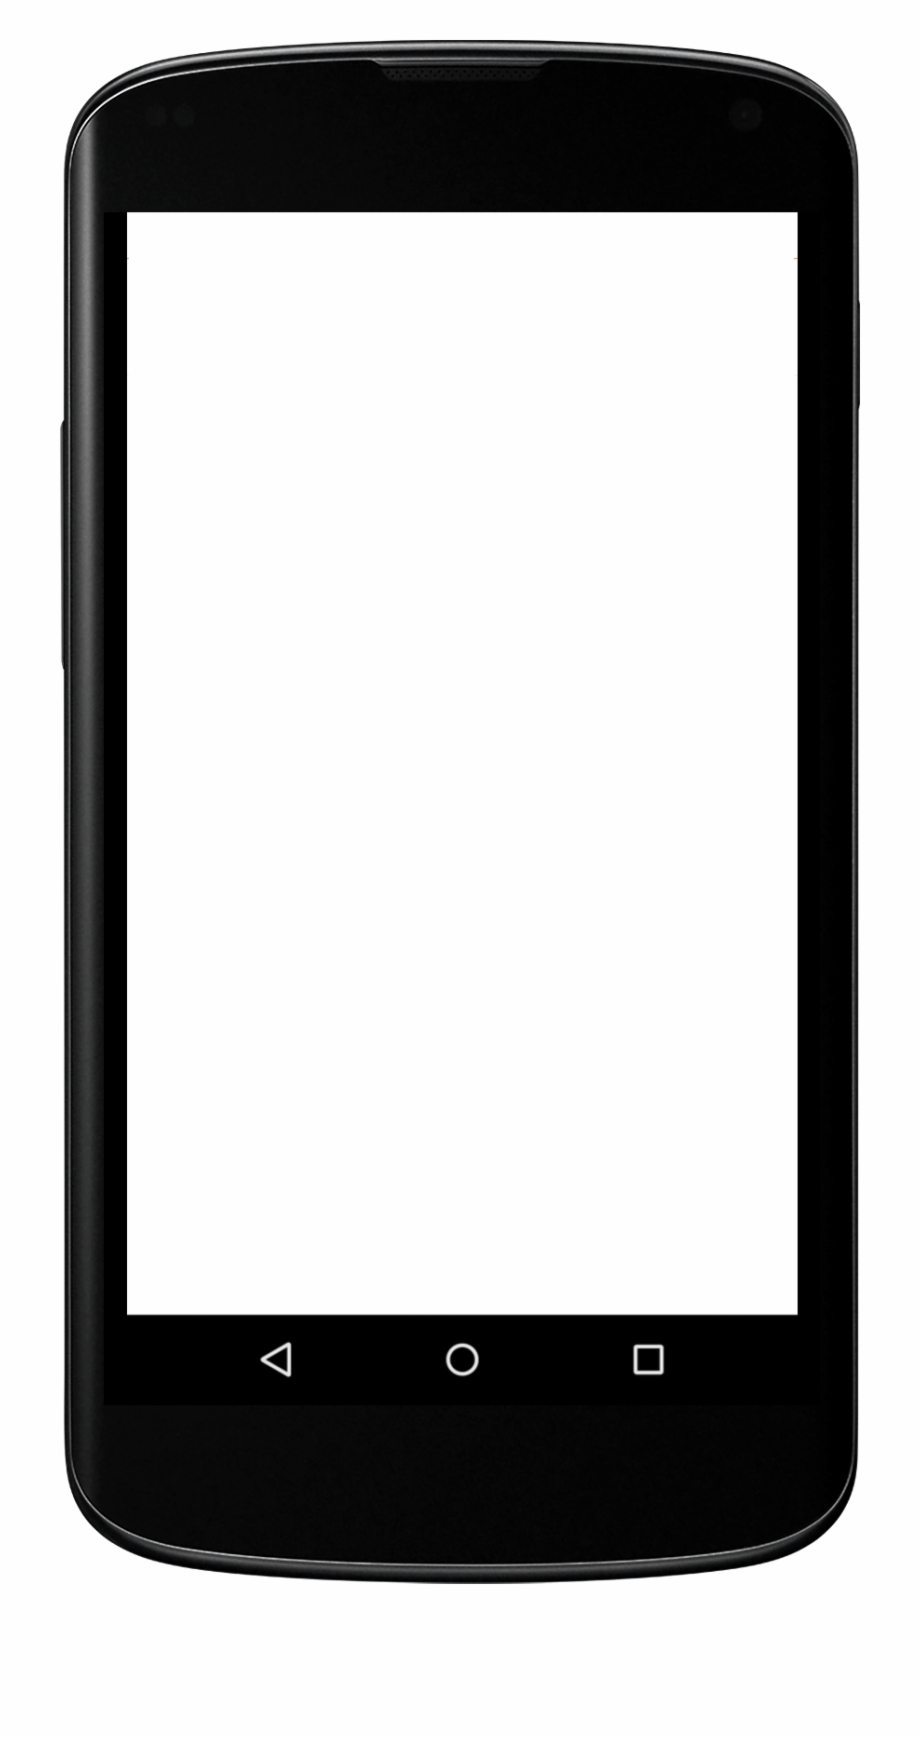 Cellphone clipart phone screen. Iphone smartphone mobile web